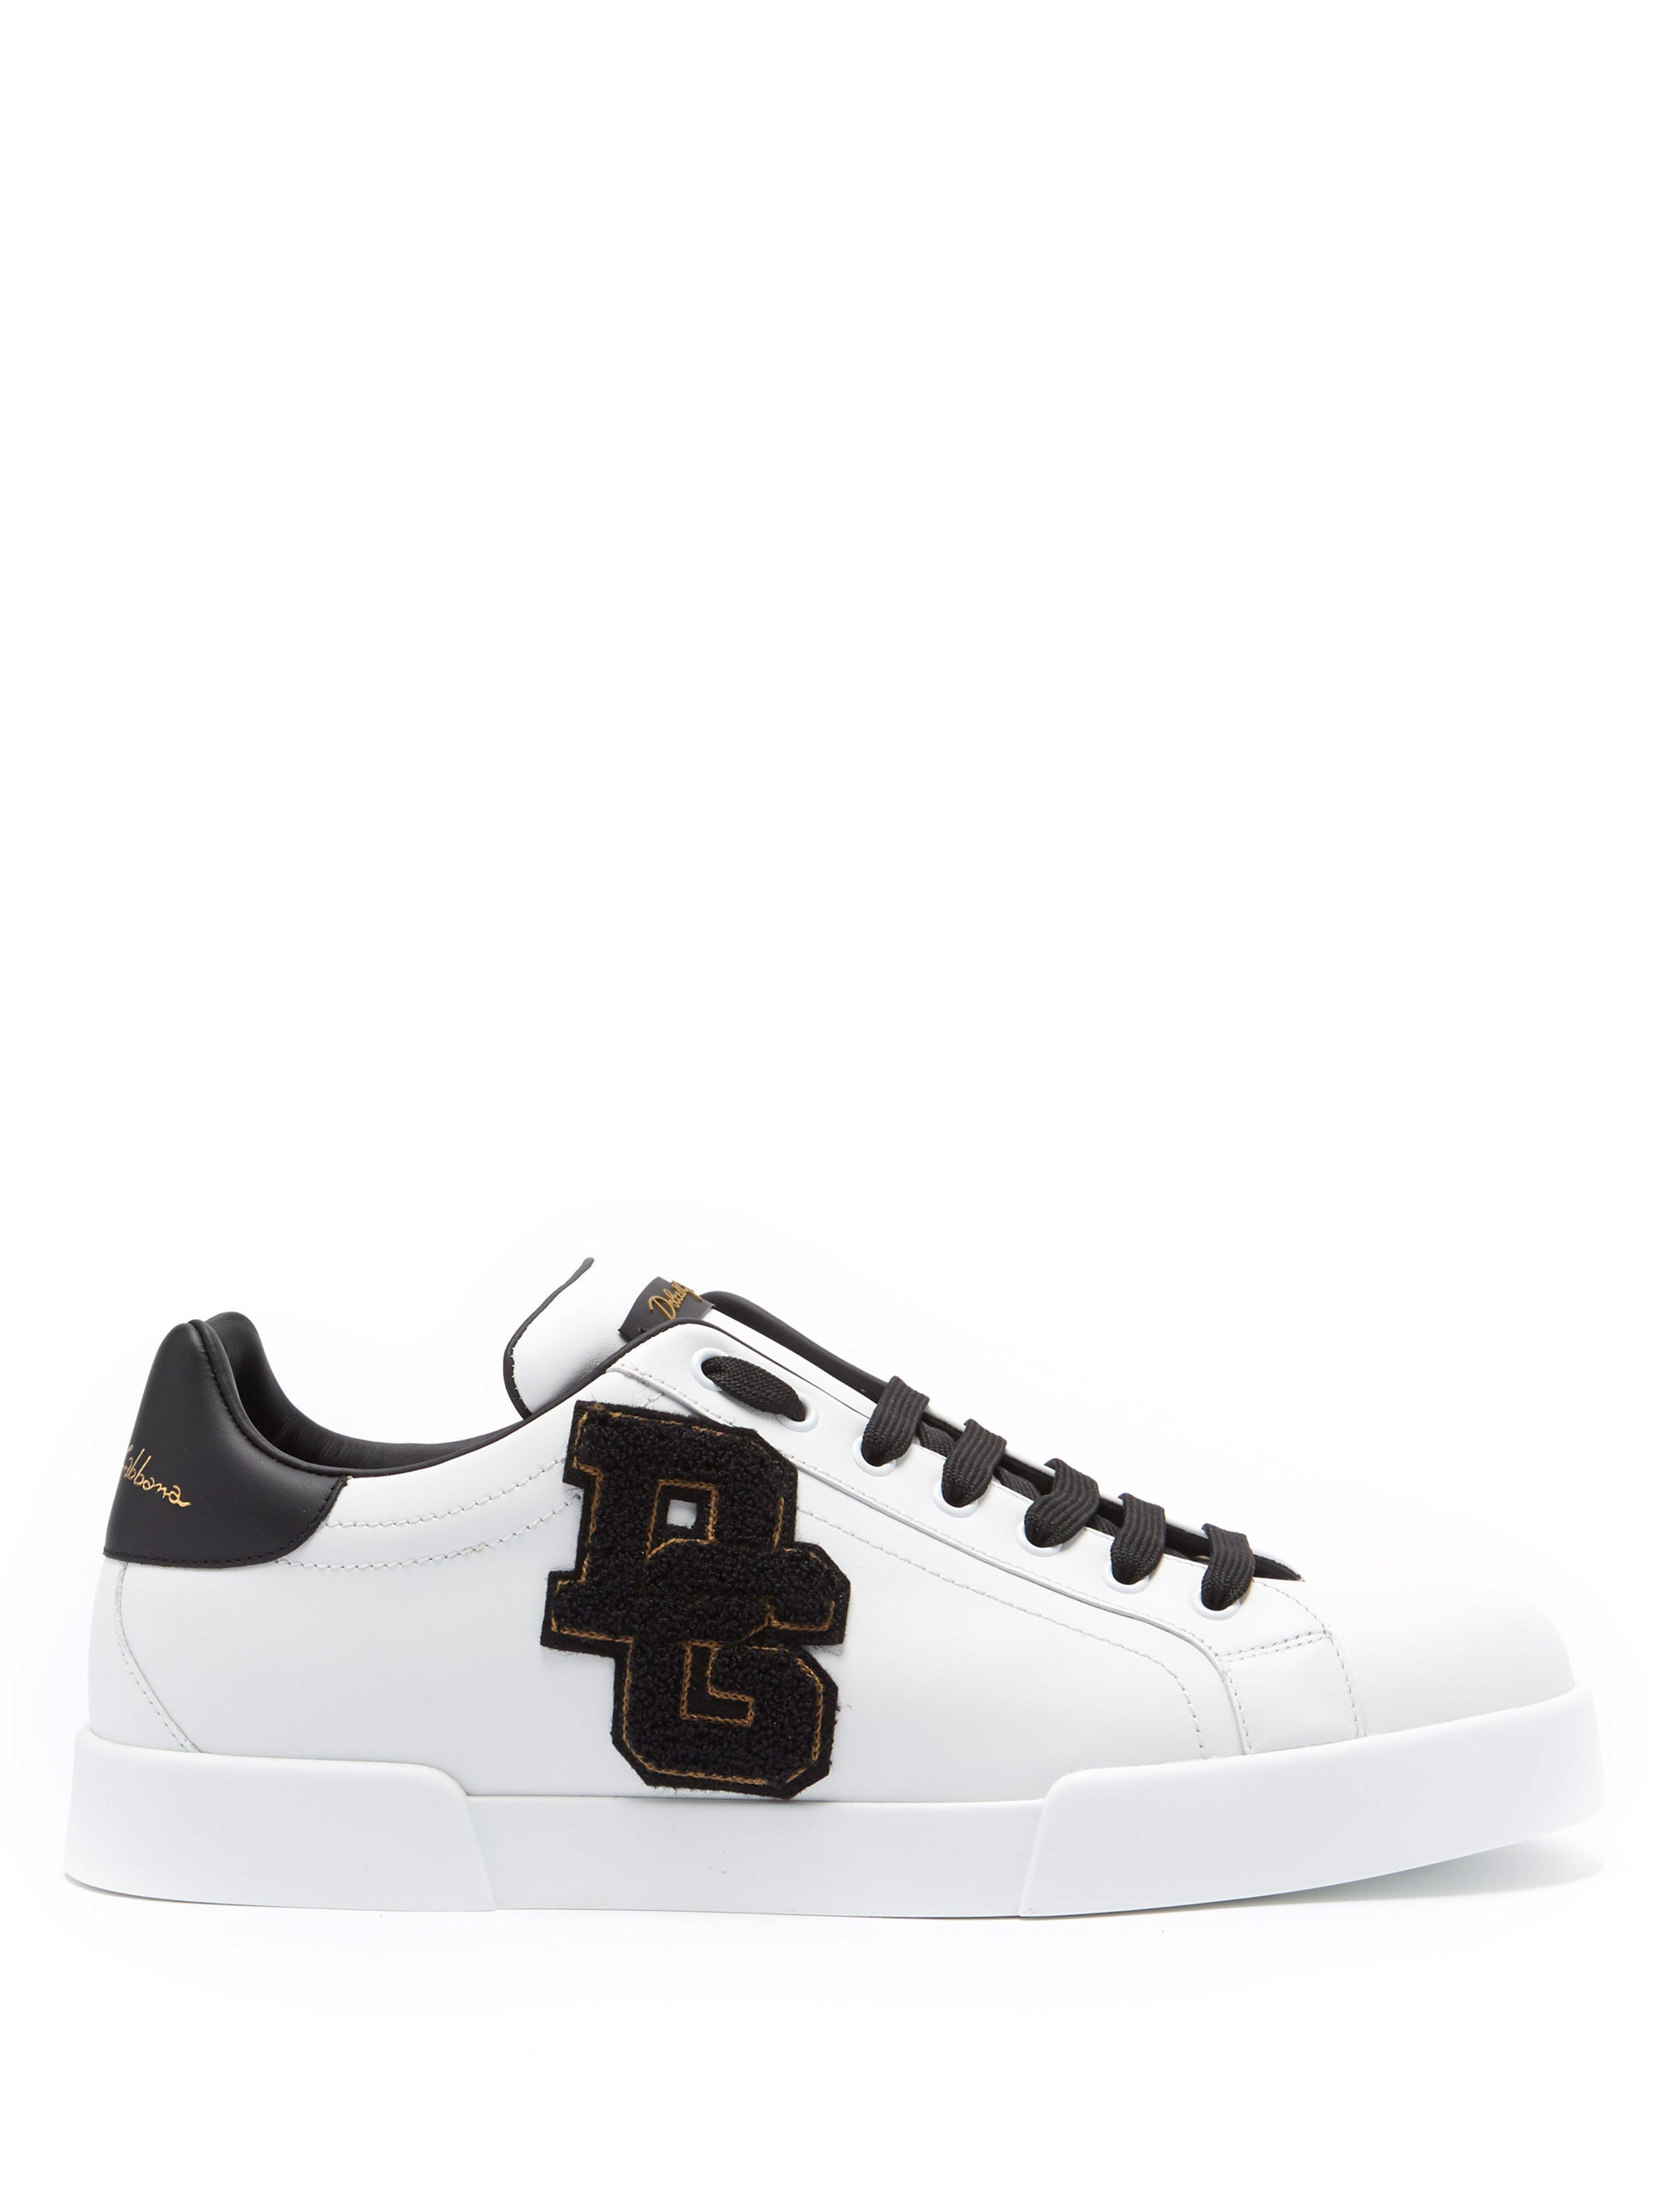 0b7373c99 Dolce & Gabbana Logo Appliqué Low Top Leather Trainers in Black for ...